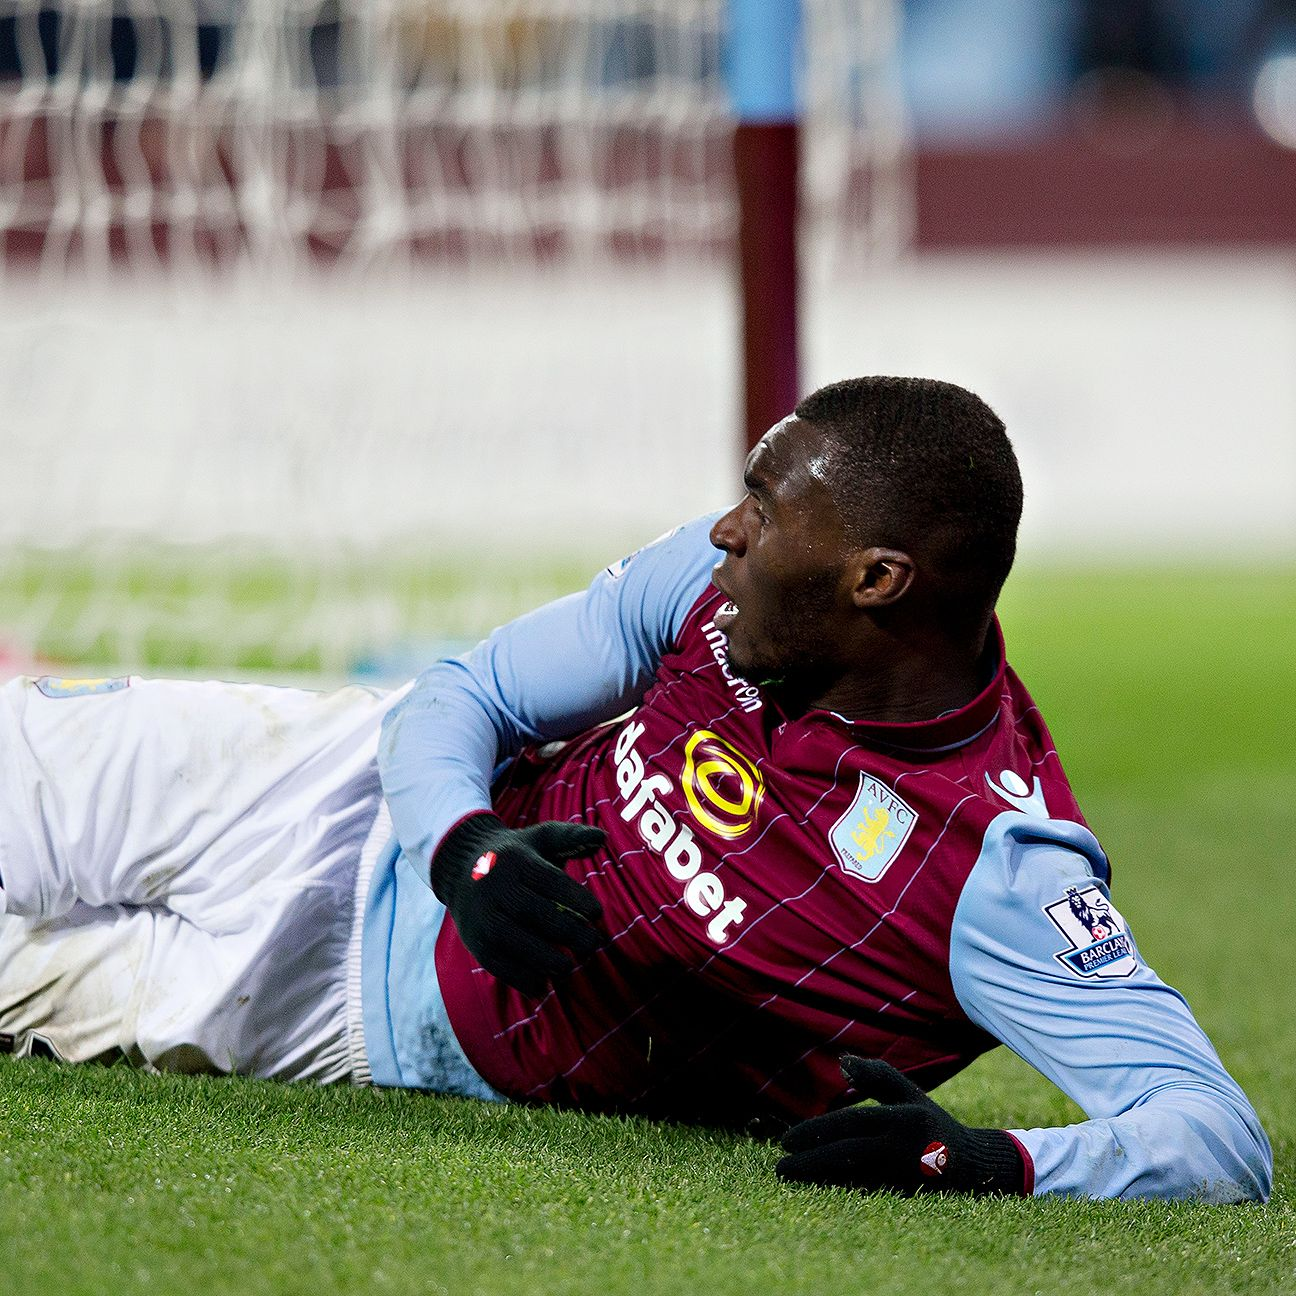 Even with Christian Benteke back in the mix, Villa's attack just can't seem to find its footing.